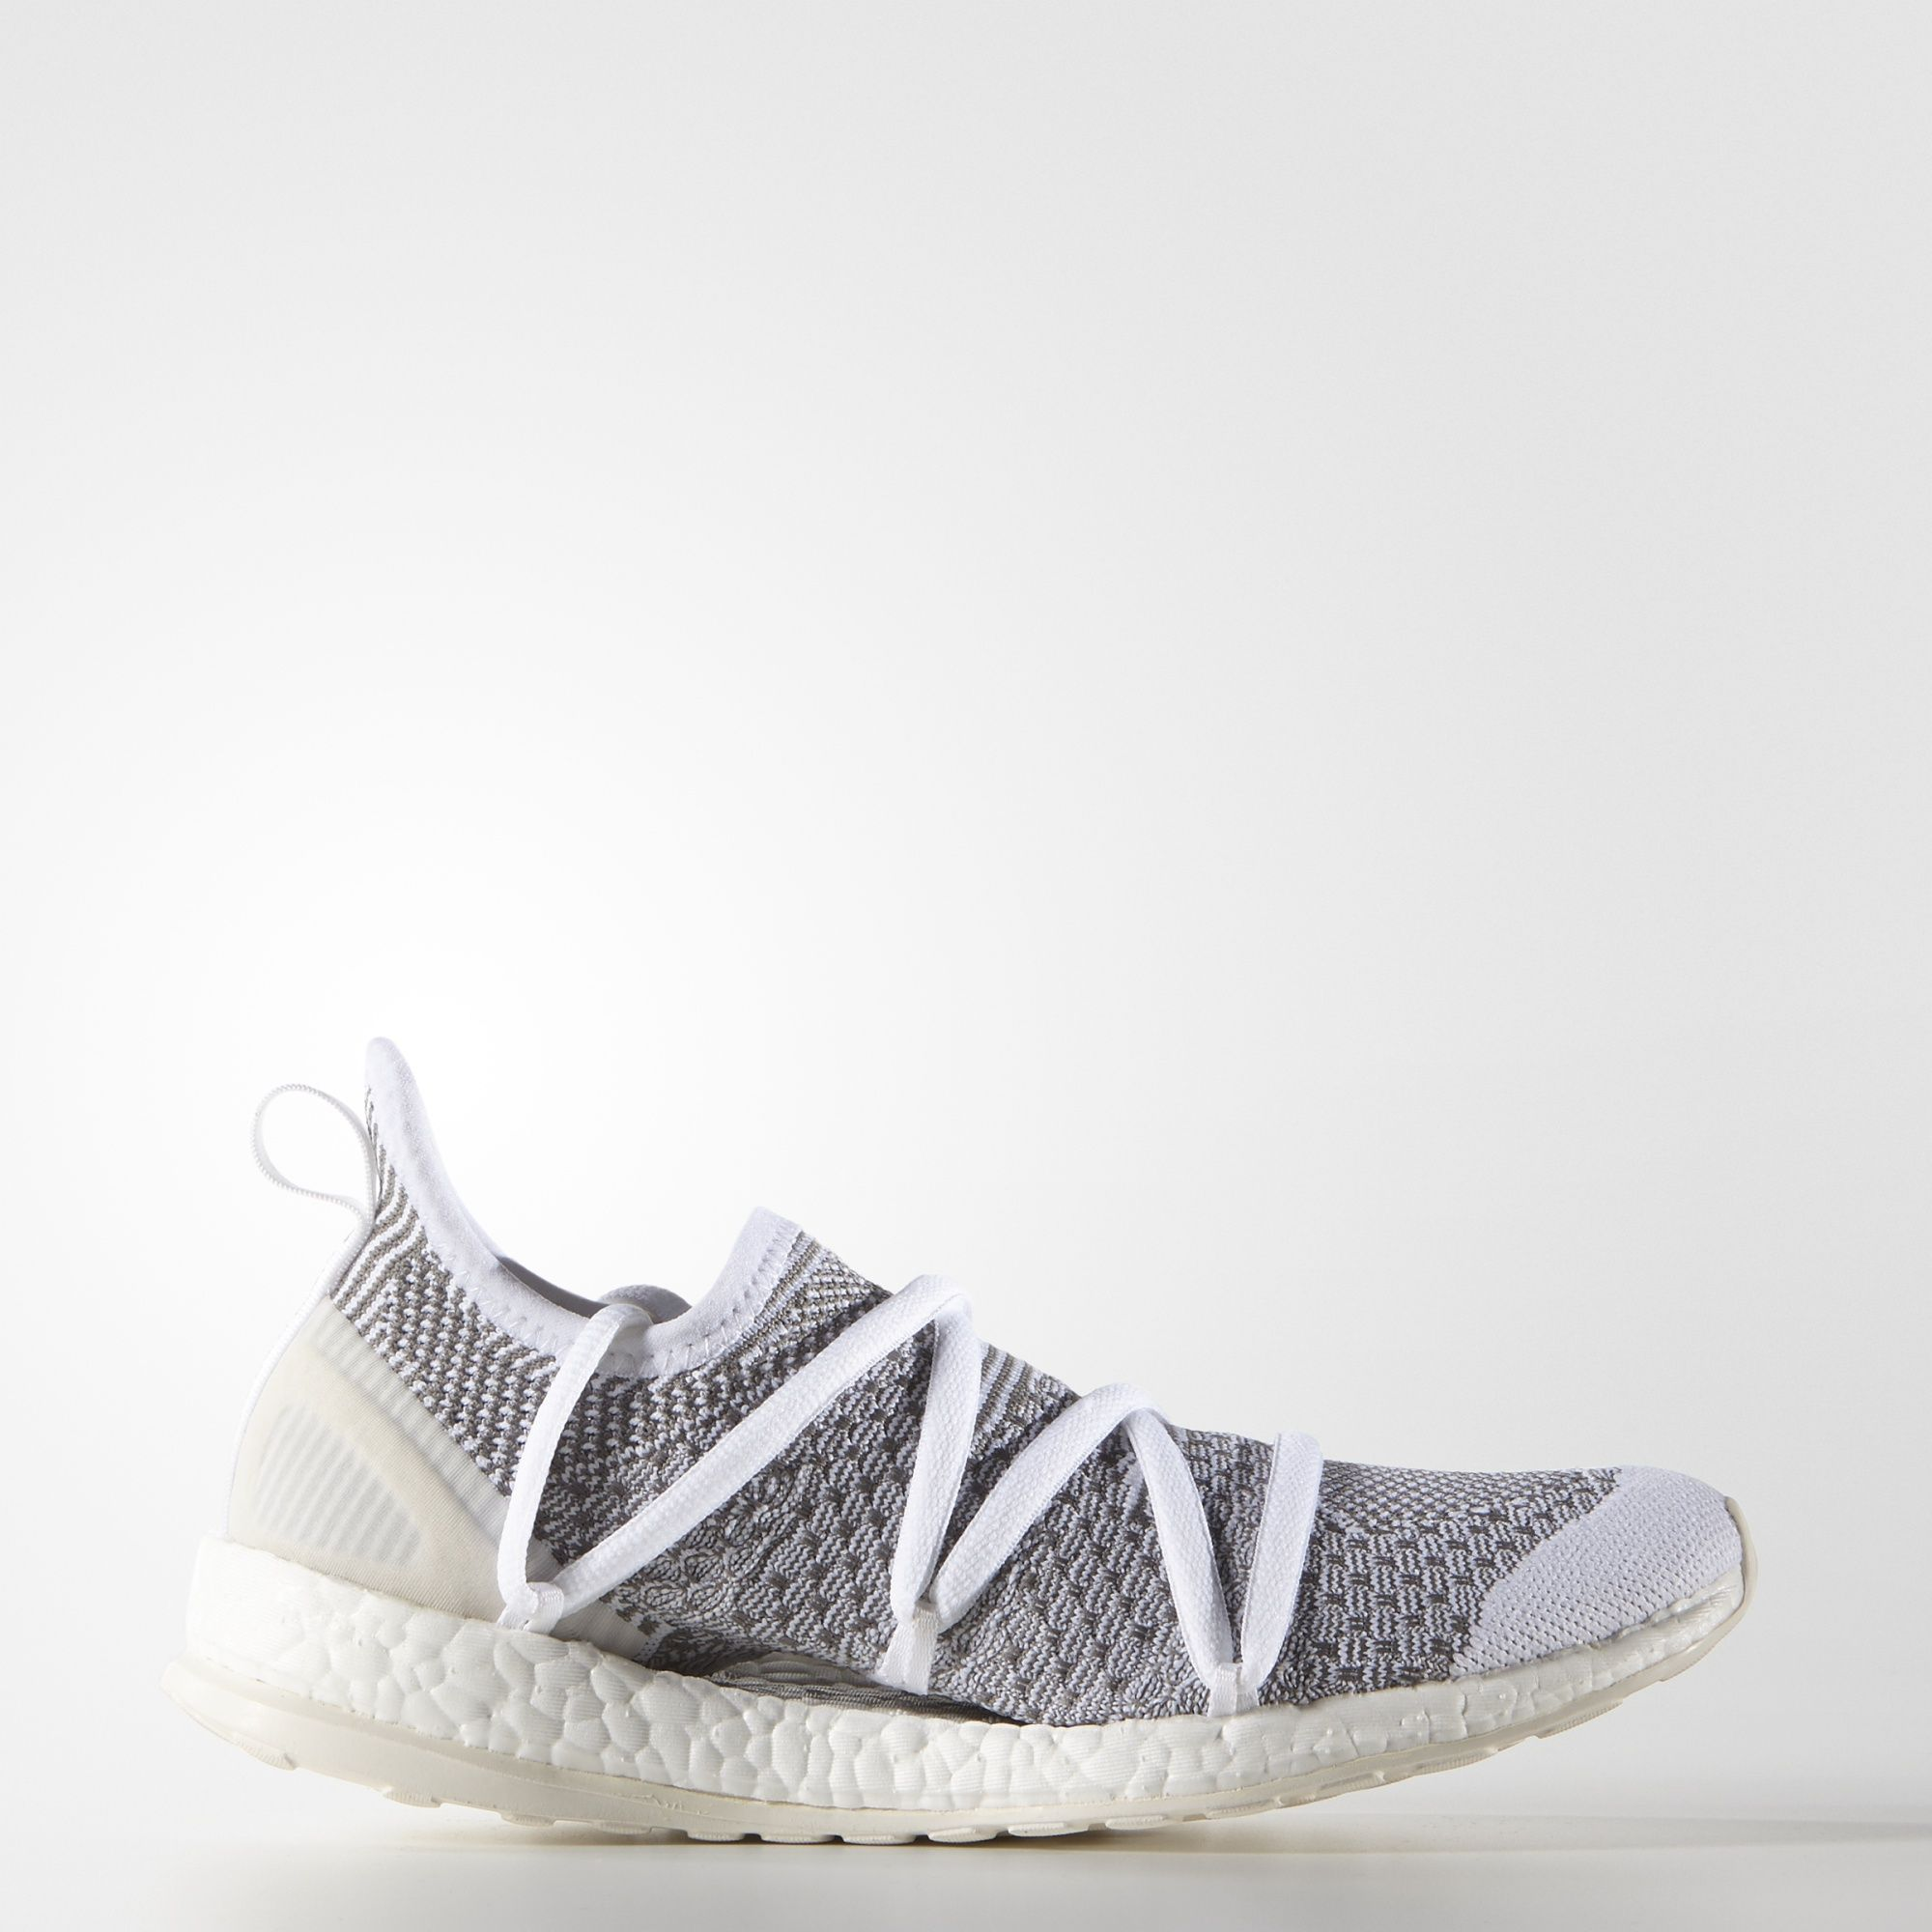 These adidas by Stella McCartney Pure Boost X shoes give an outrageously  comfortable fit to all